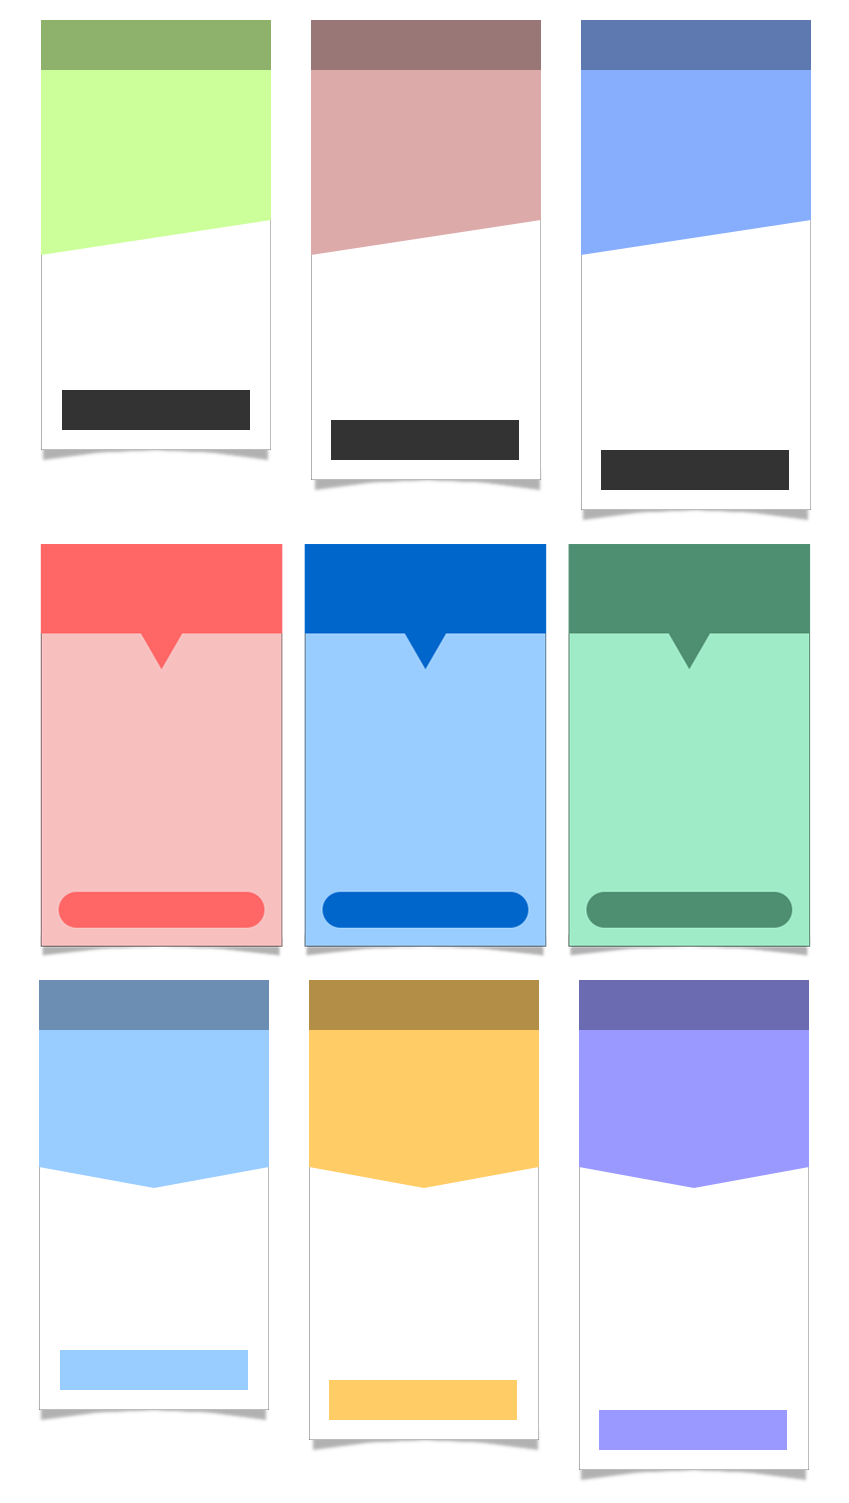 Pricing Tables without Text